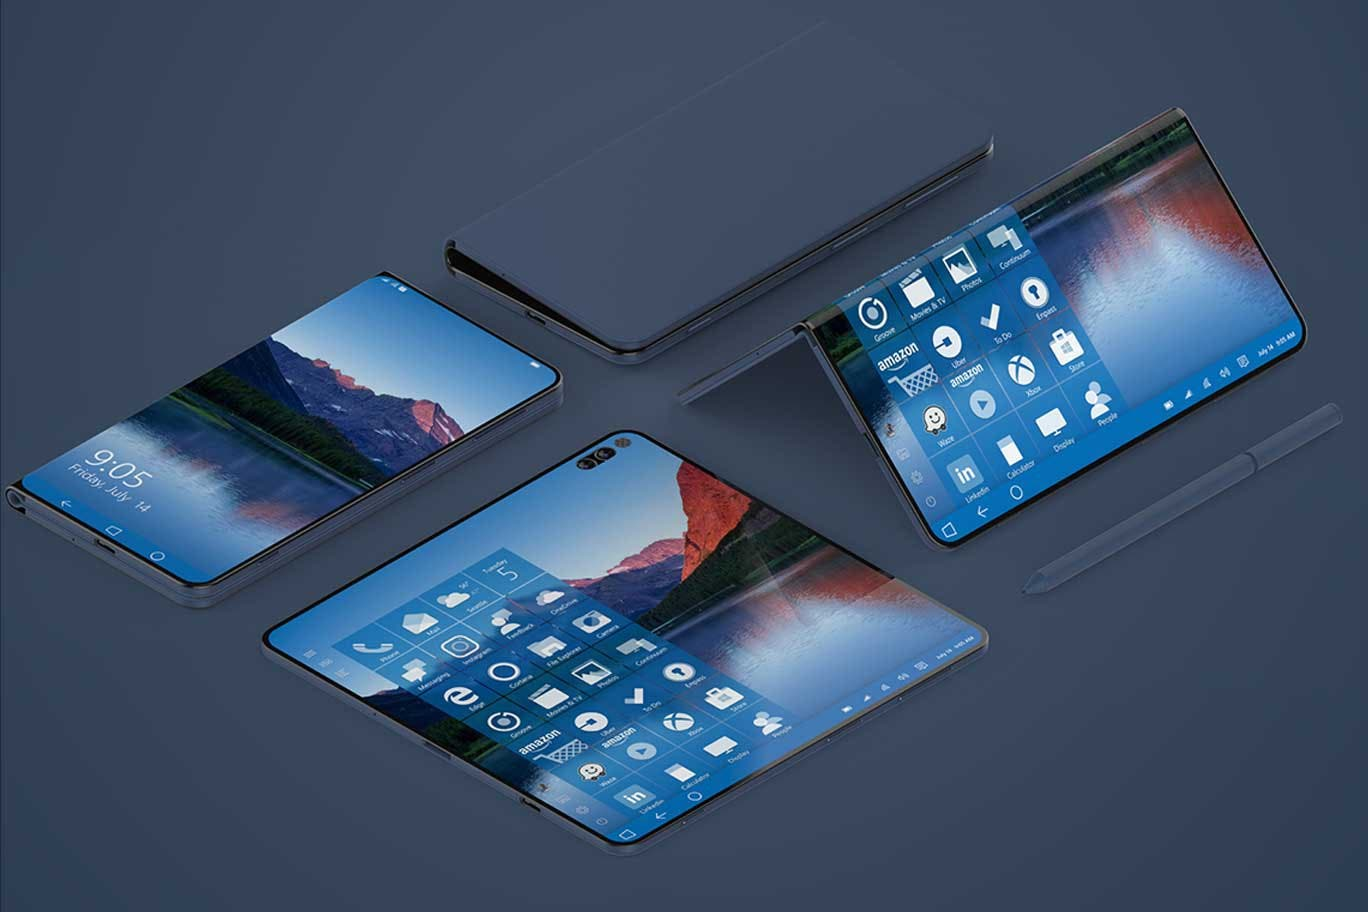 Surface Phone Concept by Ryan Smalley